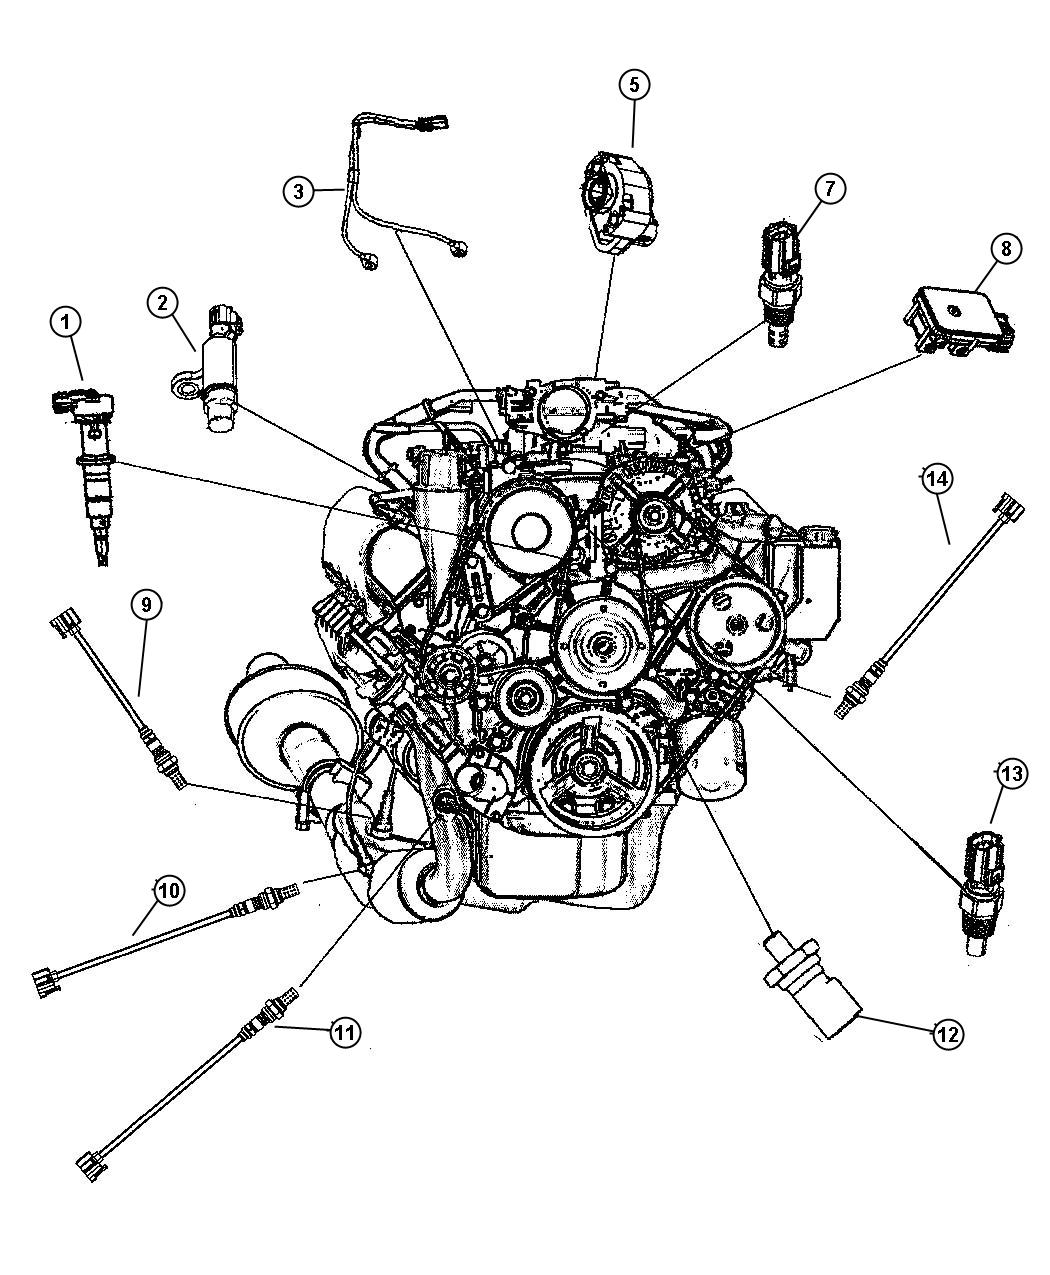 Chrysler 2 7l Engine Wiring Diagram on chrysler 200 fuse box diagram